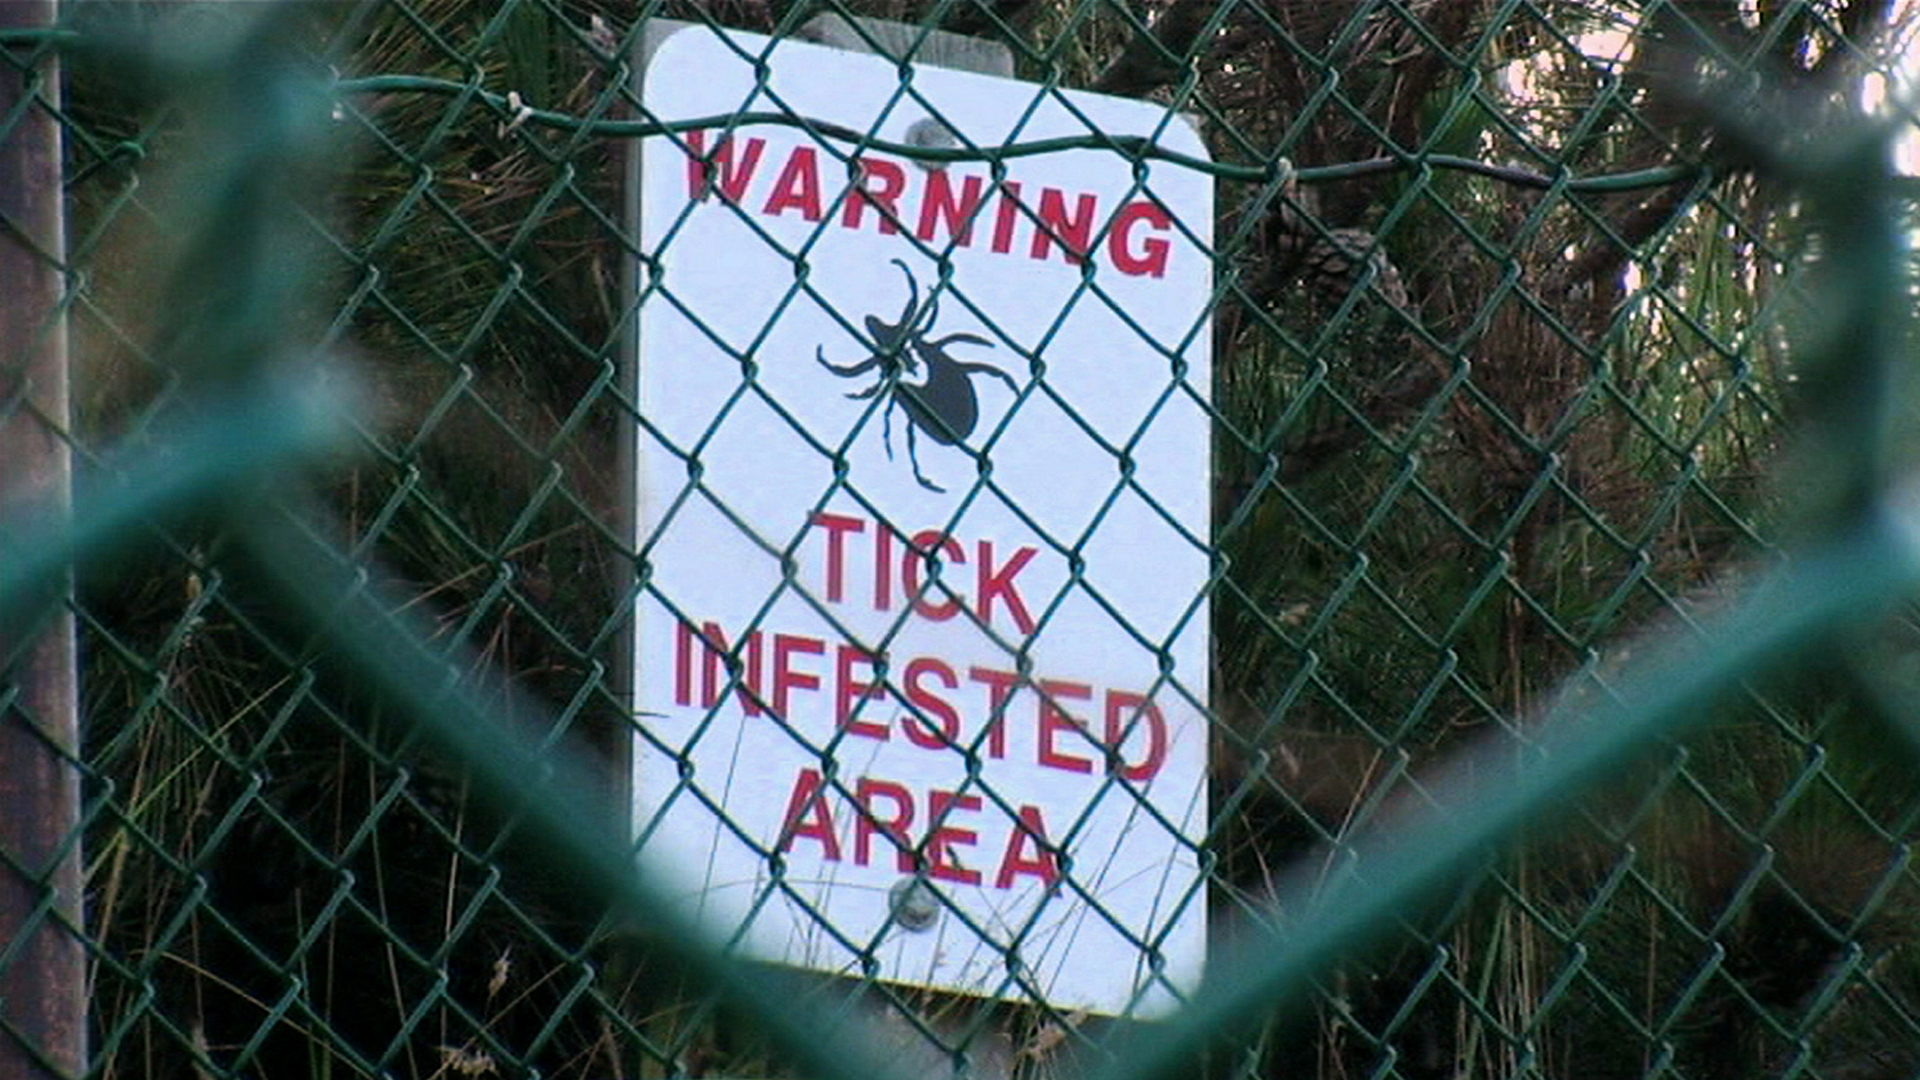 Email TICK WARNING Funny